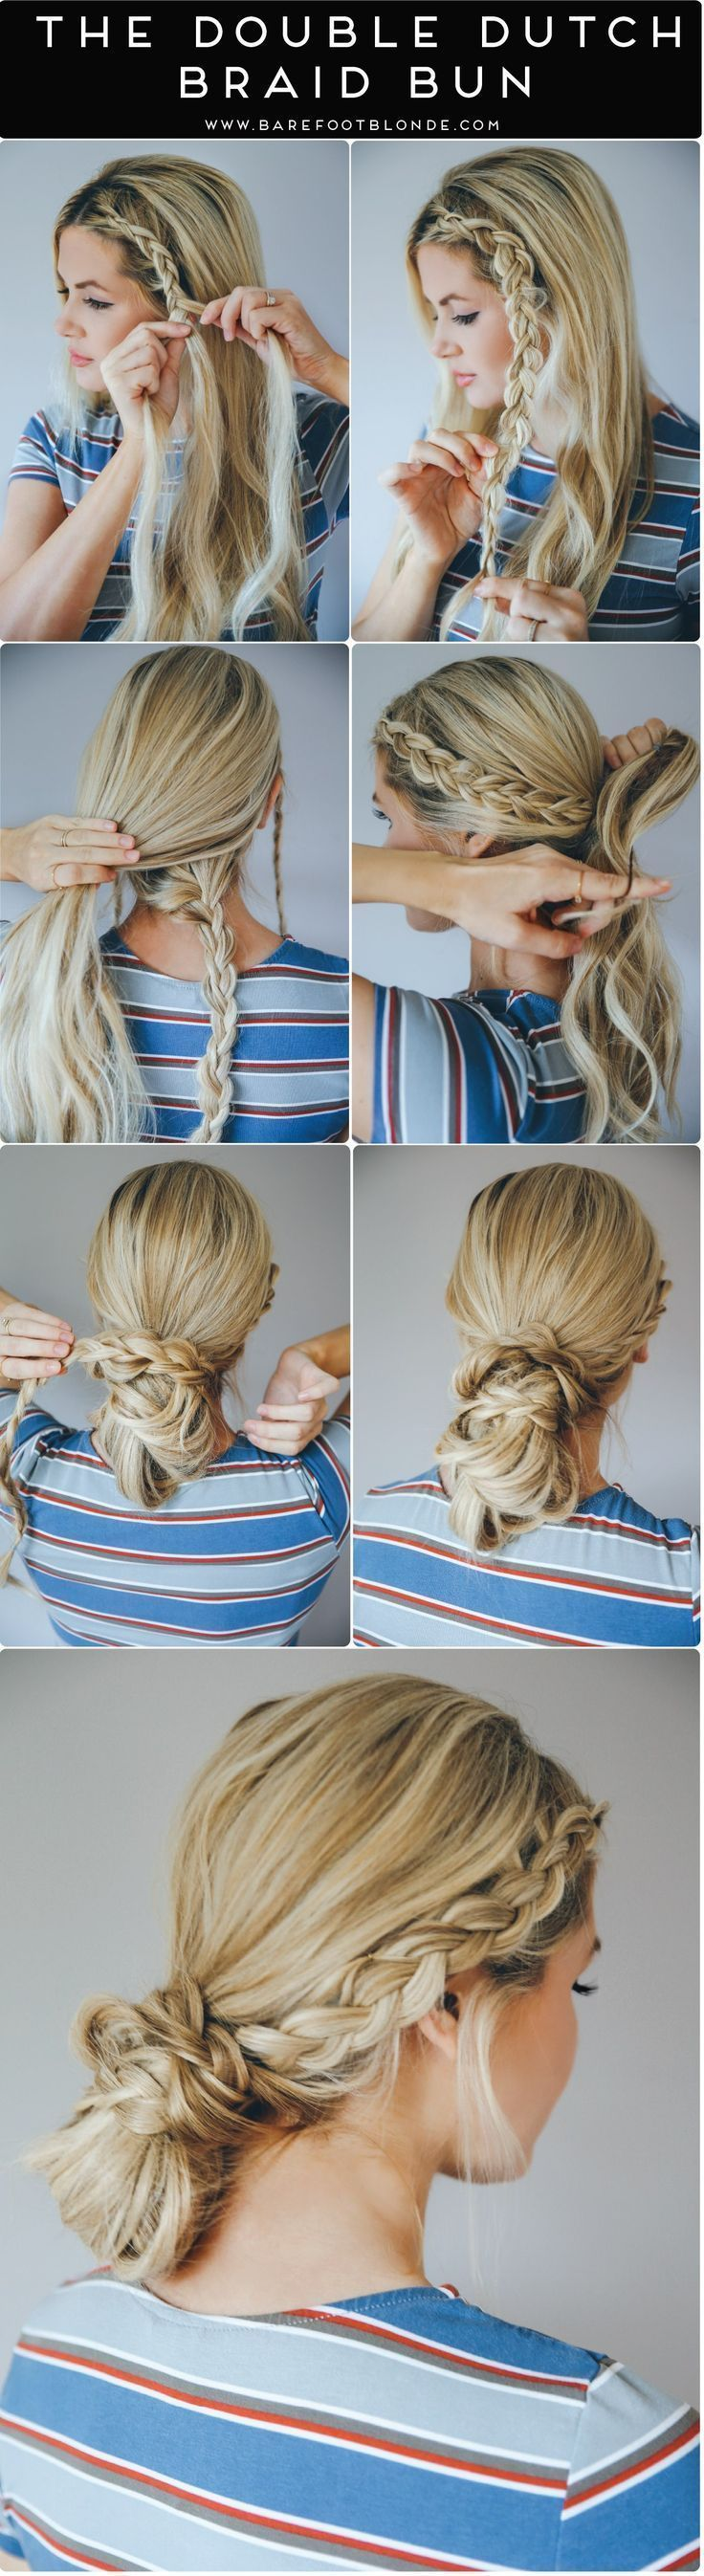 8 Super Easy Braids That Will Fix Any Bad Hair Day Easy Hairstyles Medium Hair Styles Messy Hairstyles